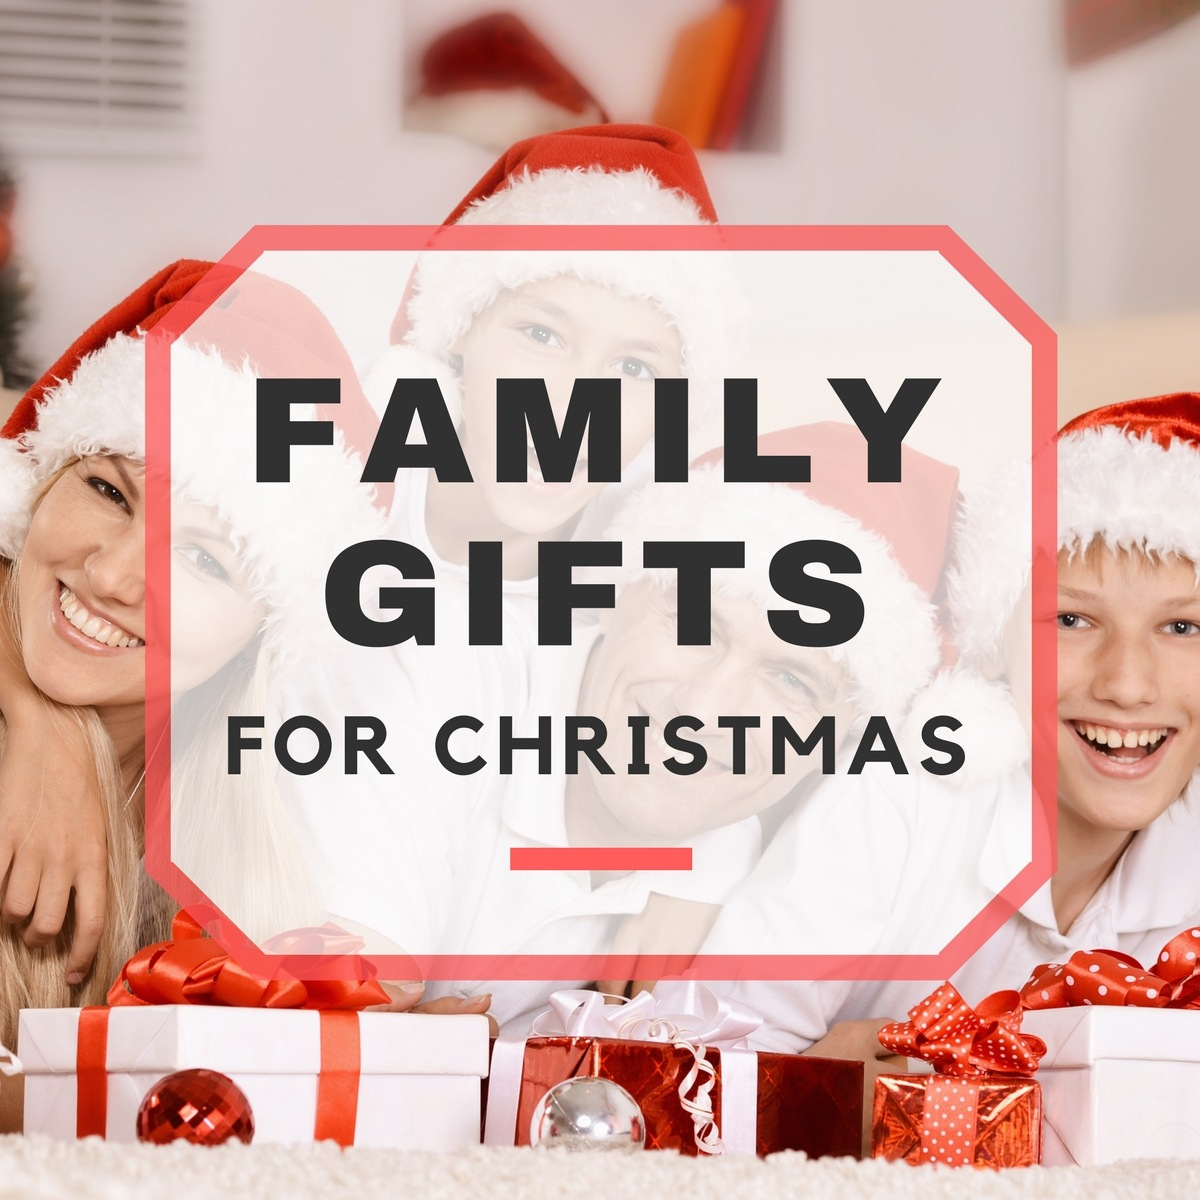 Whole family gift ideas for christmas